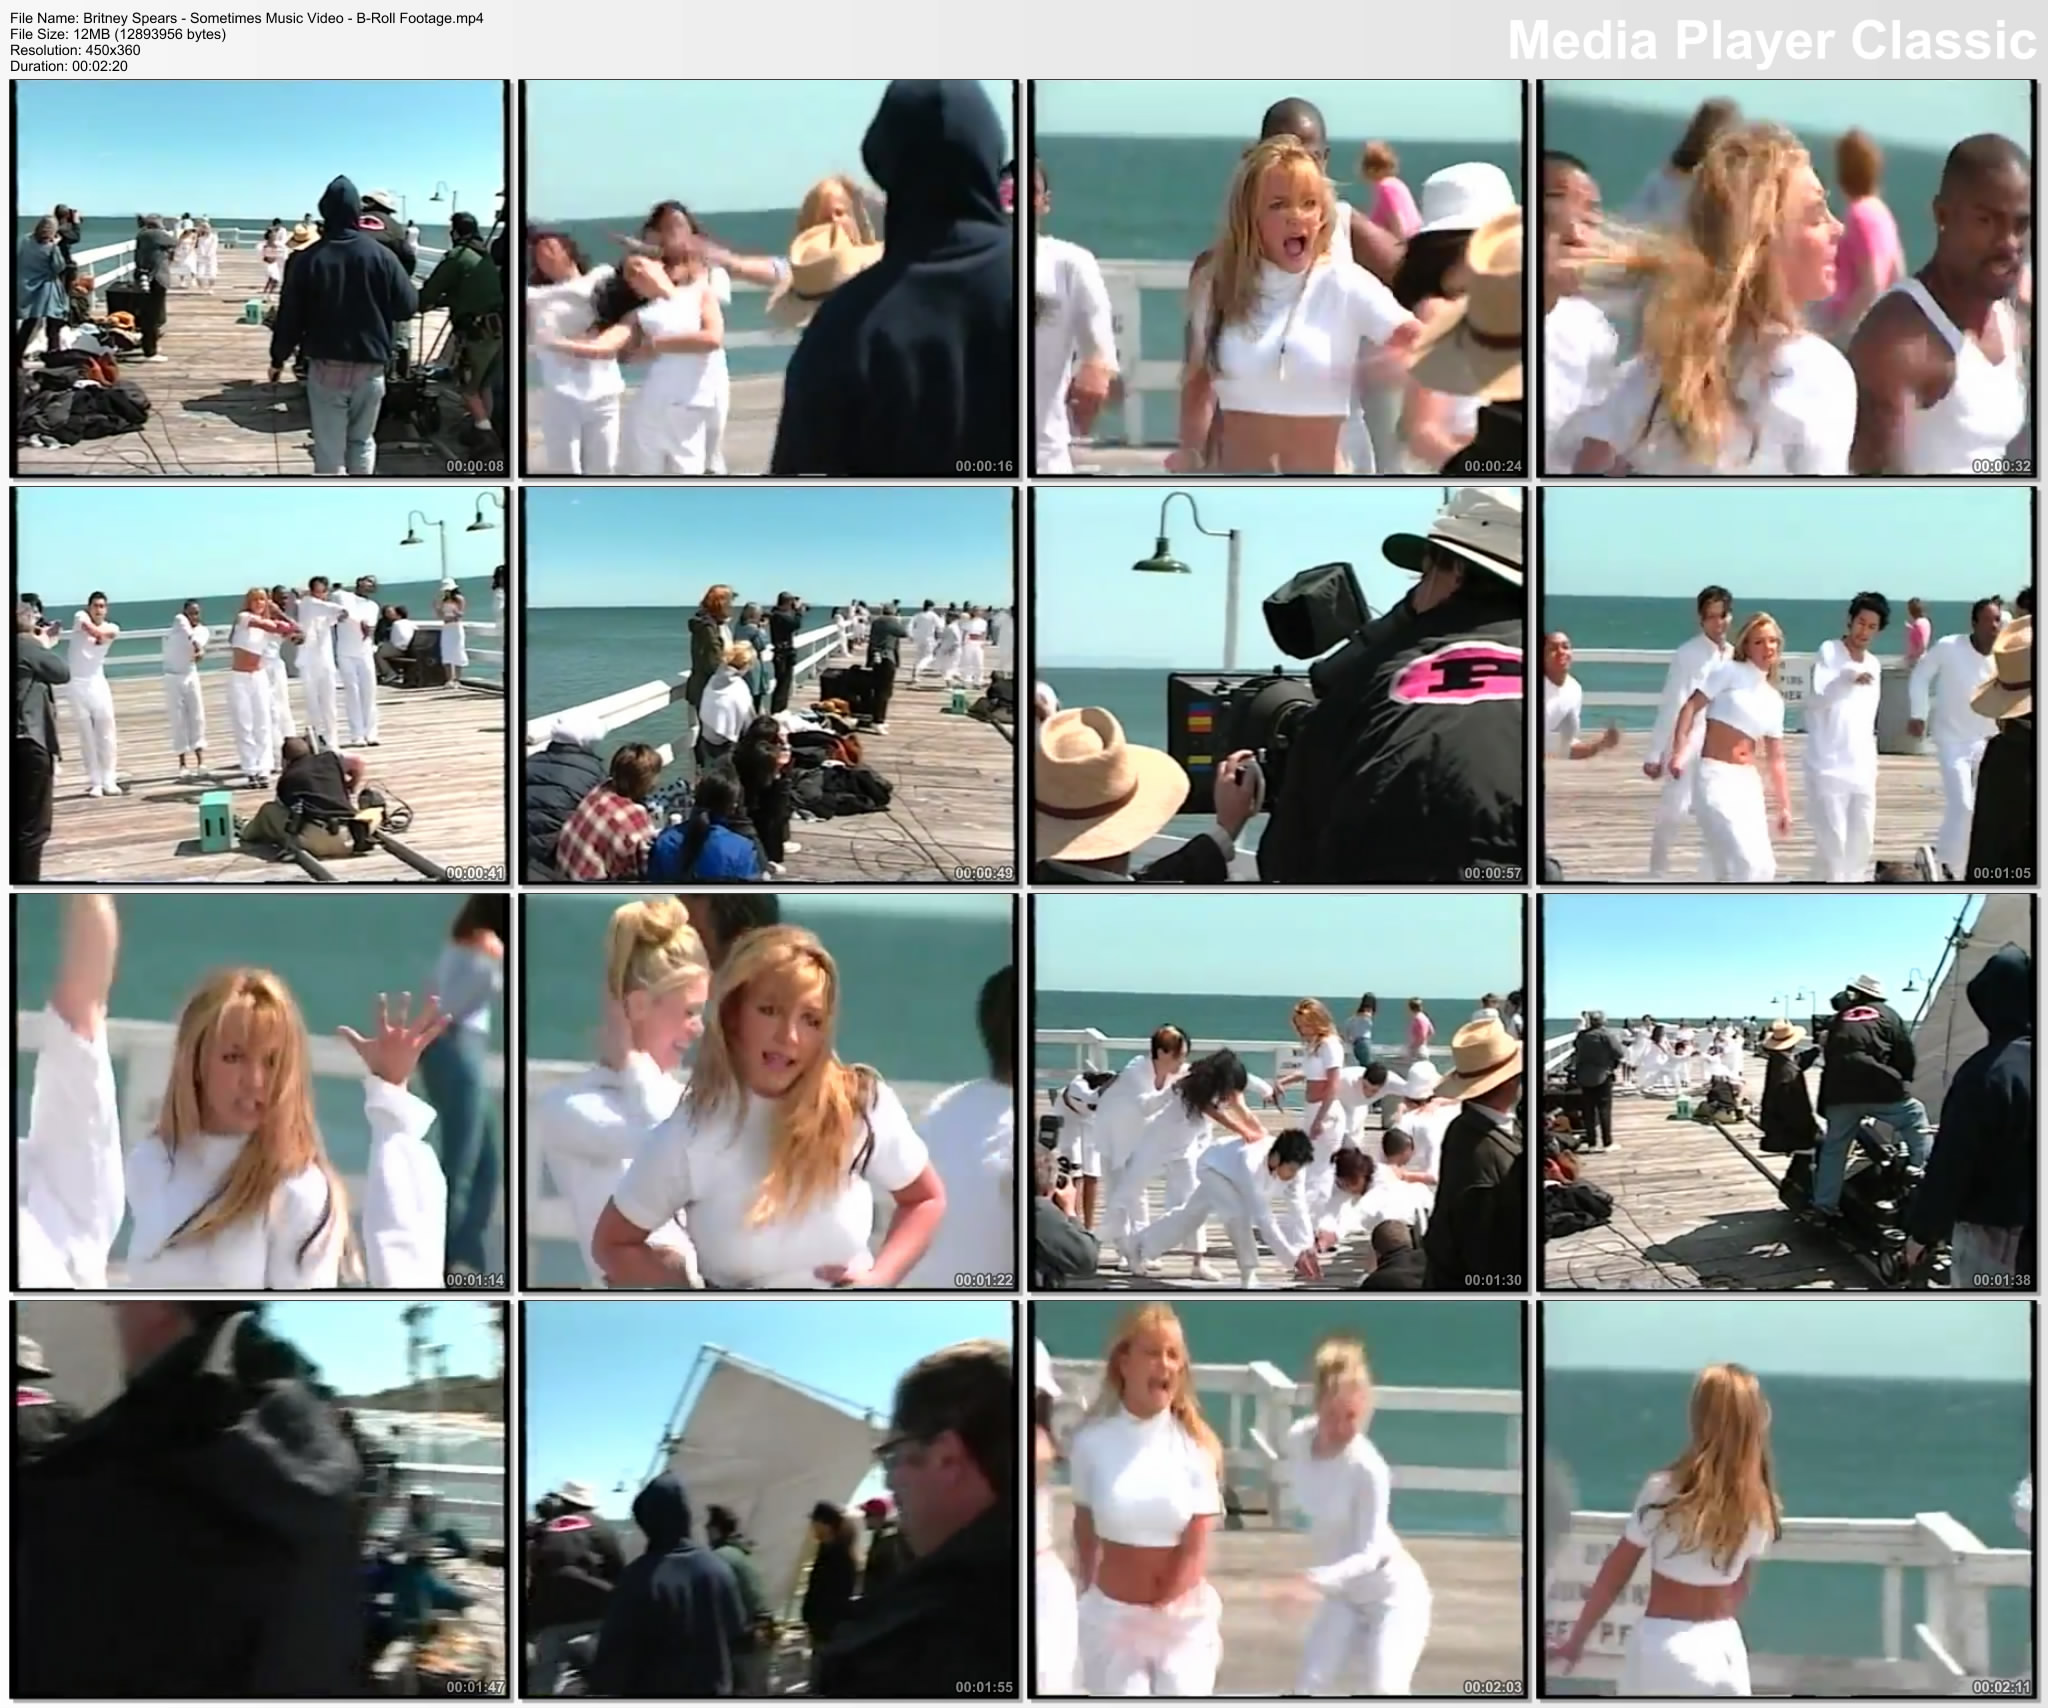 675625849_BritneySpears_SometimesMusicVideo_B_RollFootage.mp4_thumbs_2012.02.19_21.01.11_122_164lo.jpg